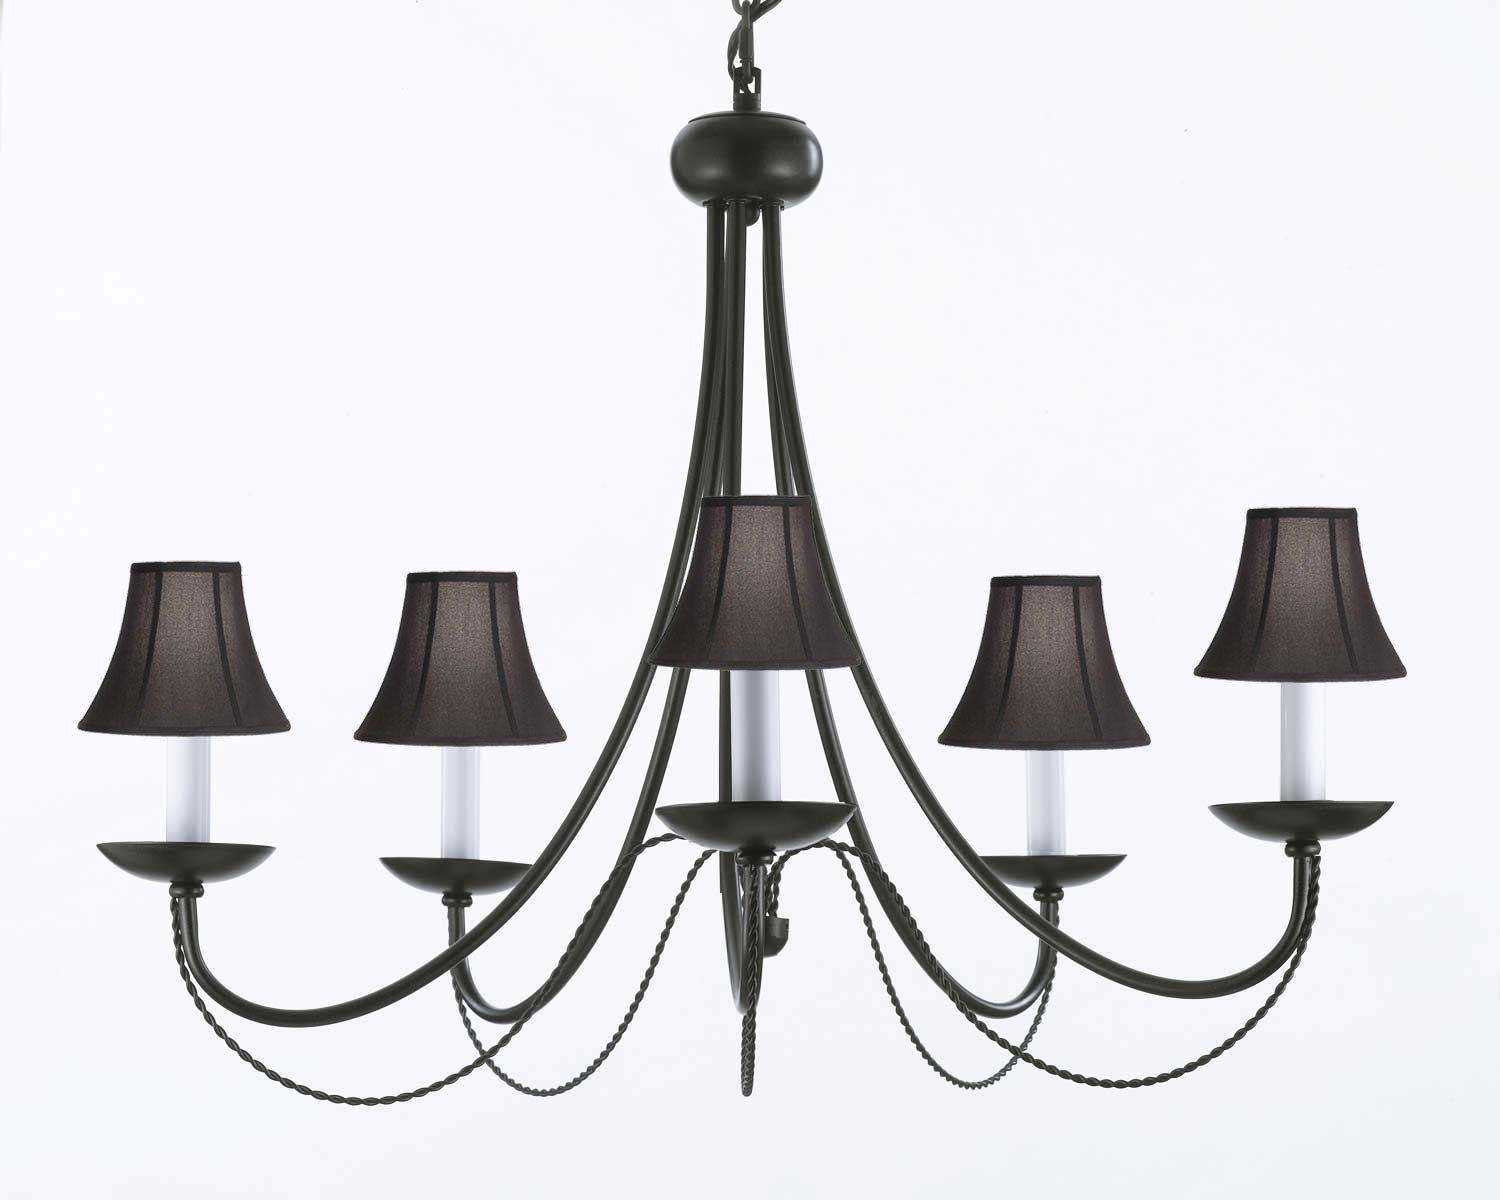 Shop wrought iron plug in chandelier lighting with black shades h22 wrought iron plug in chandelier lighting with black shades h22 x w26 aloadofball Images